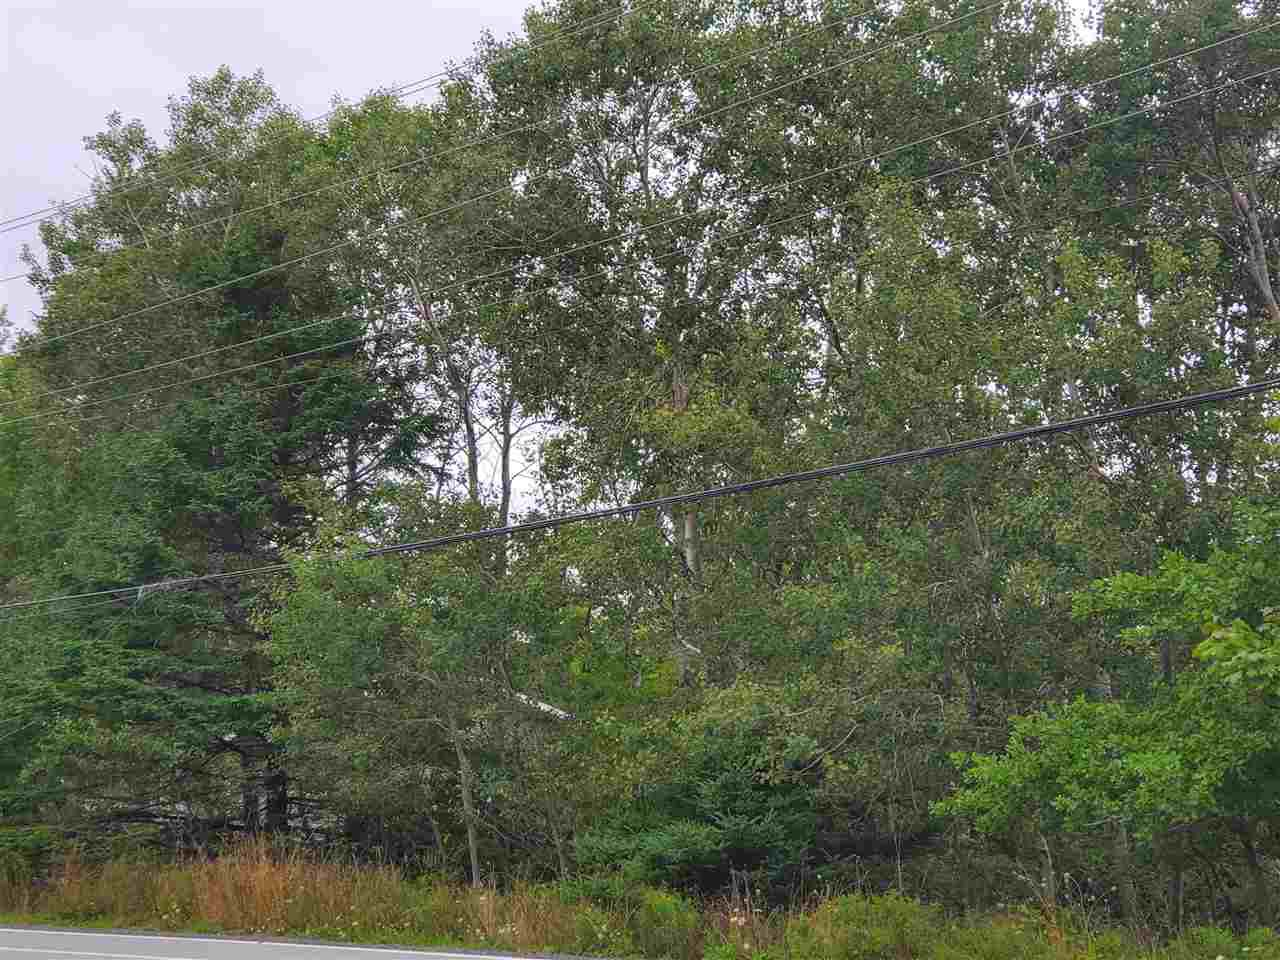 Main Photo: Lot 1 Herring Cove Road in Herring Cove: 8-Armdale/Purcell`s Cove/Herring Cove Vacant Land for sale (Halifax-Dartmouth)  : MLS®# 202018632